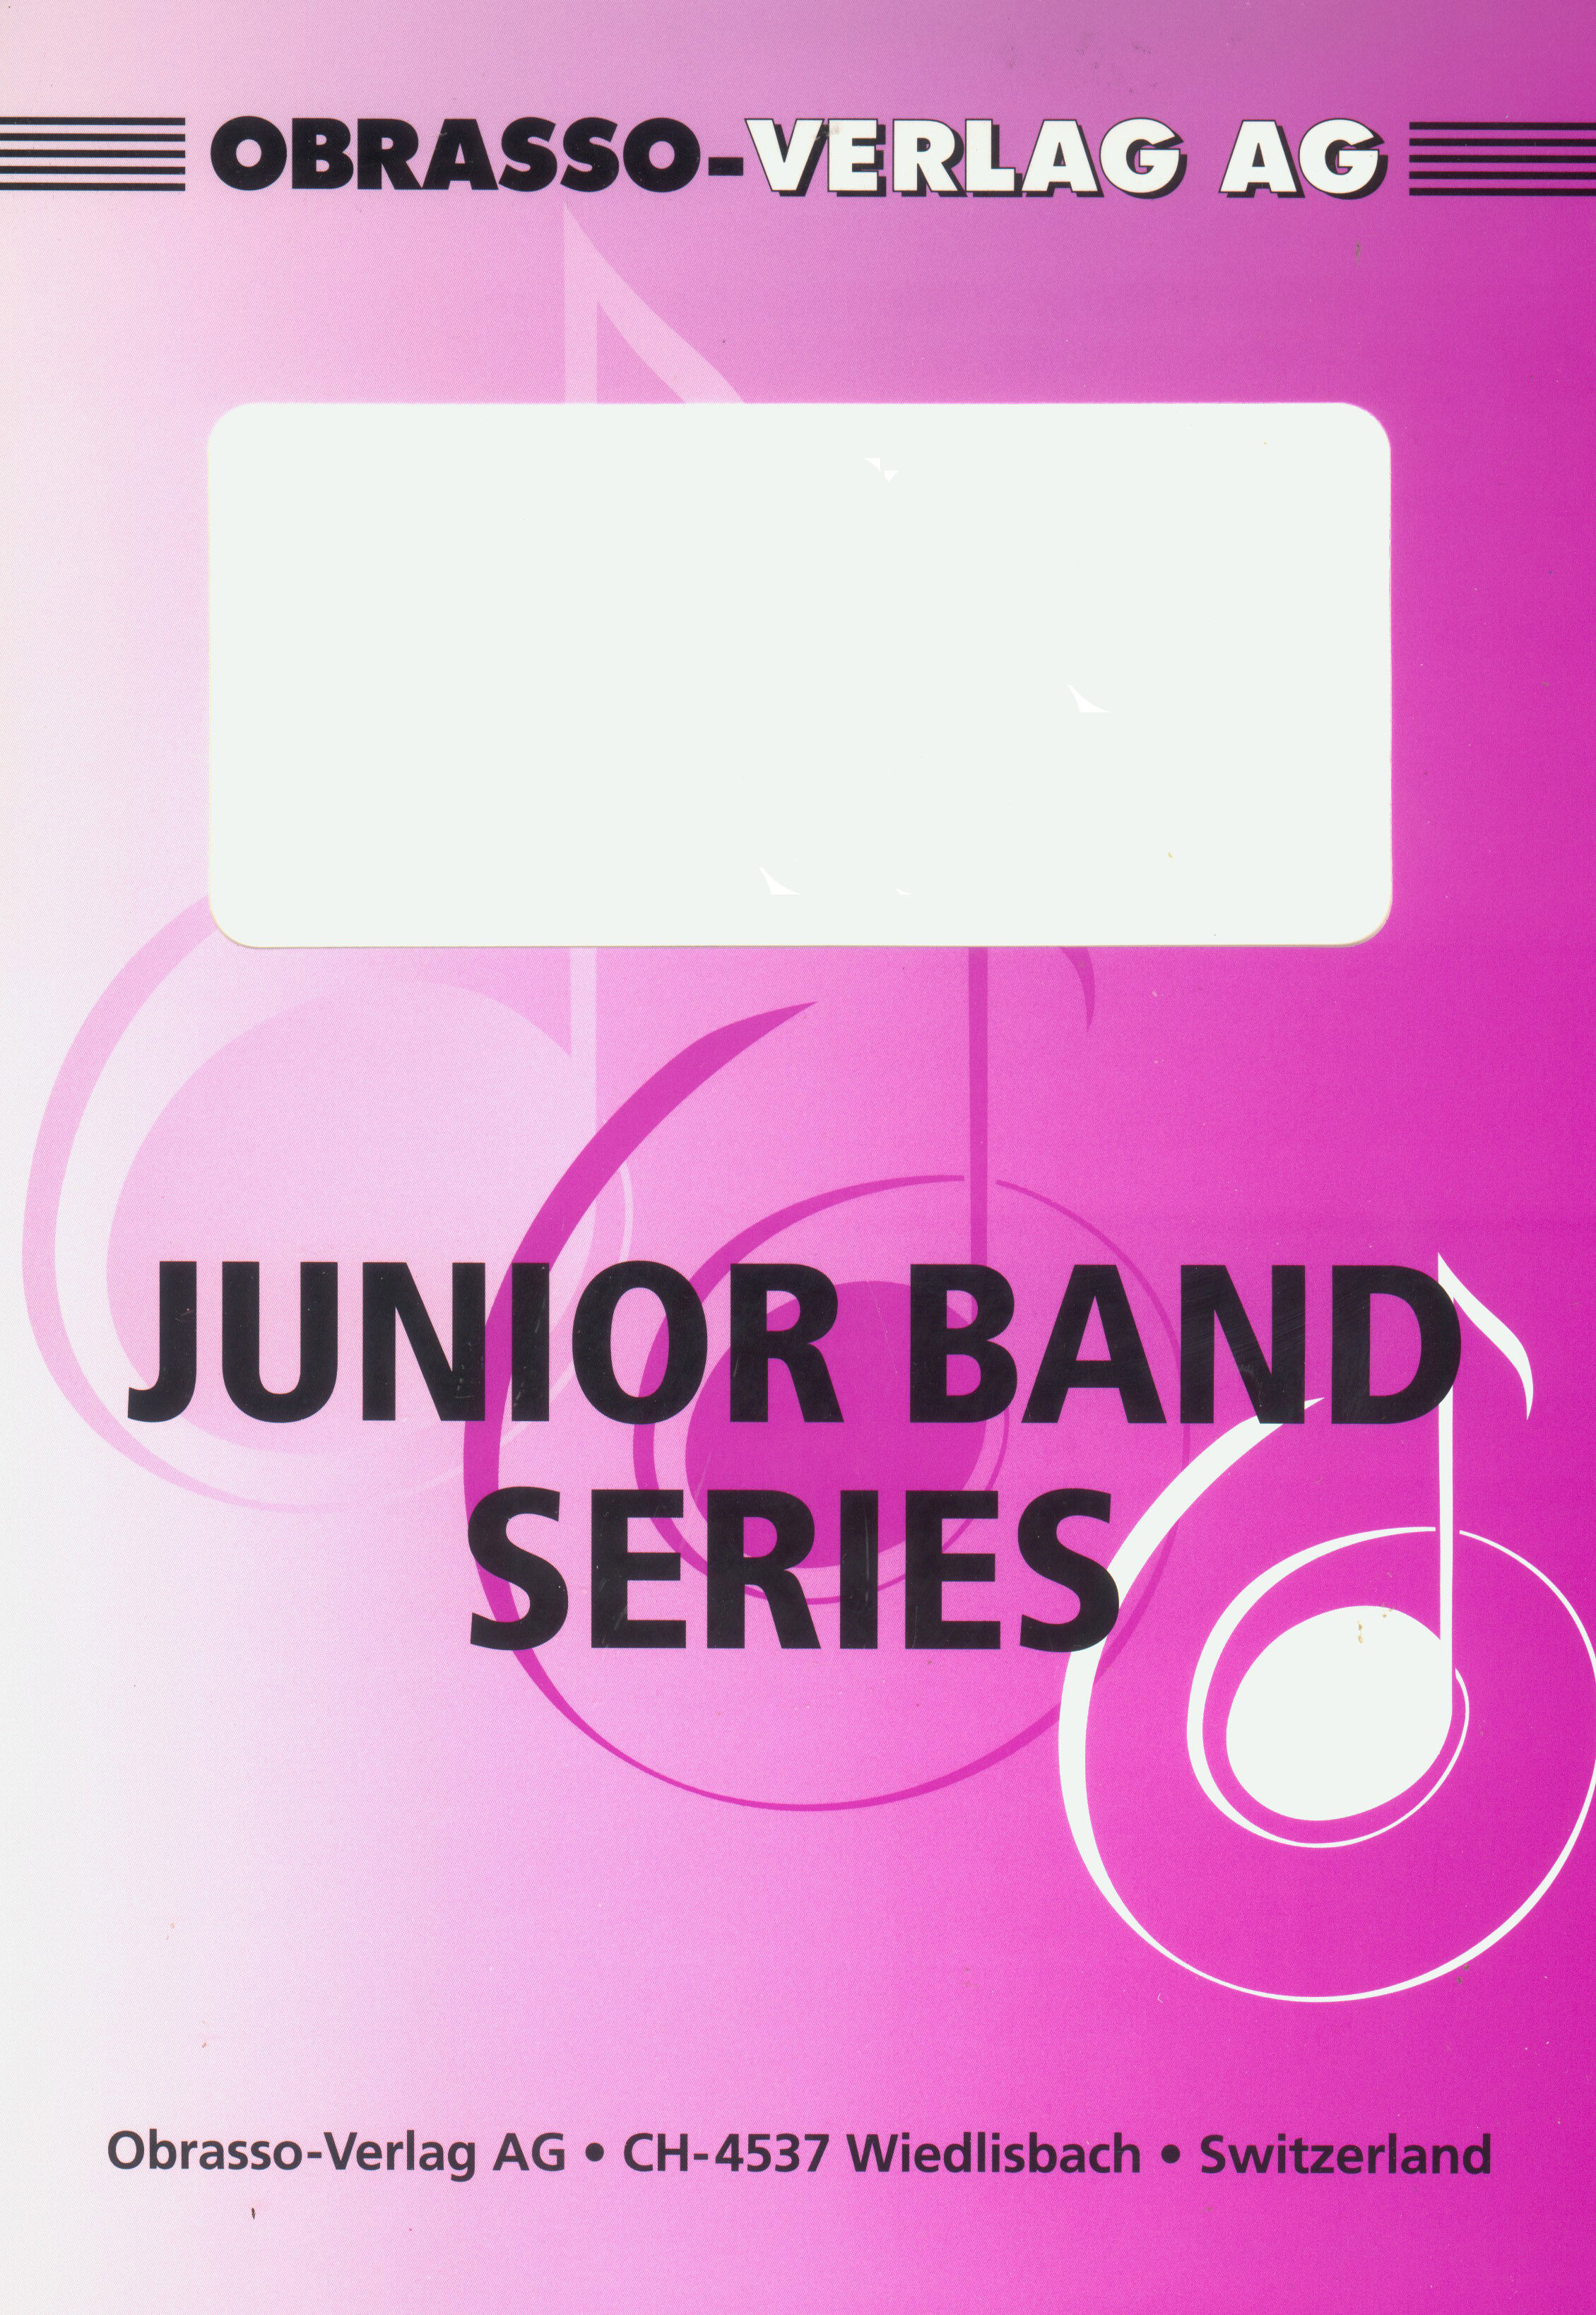 1939: WORLD WAR II MEDLEY (Junior Band no.94)